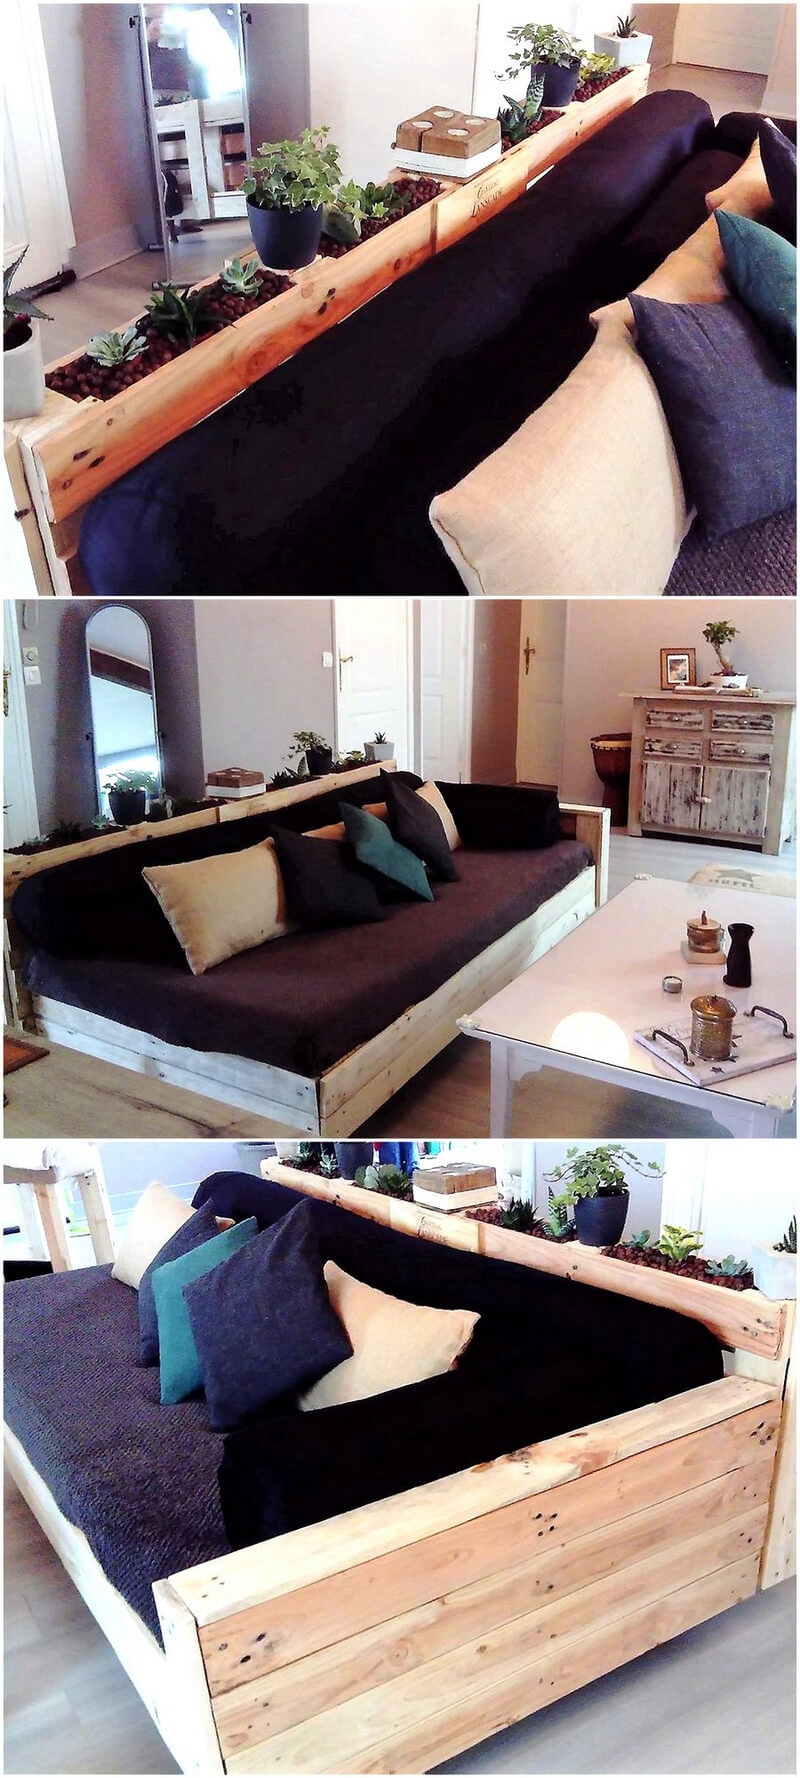 repurposed wood pallet couch idea